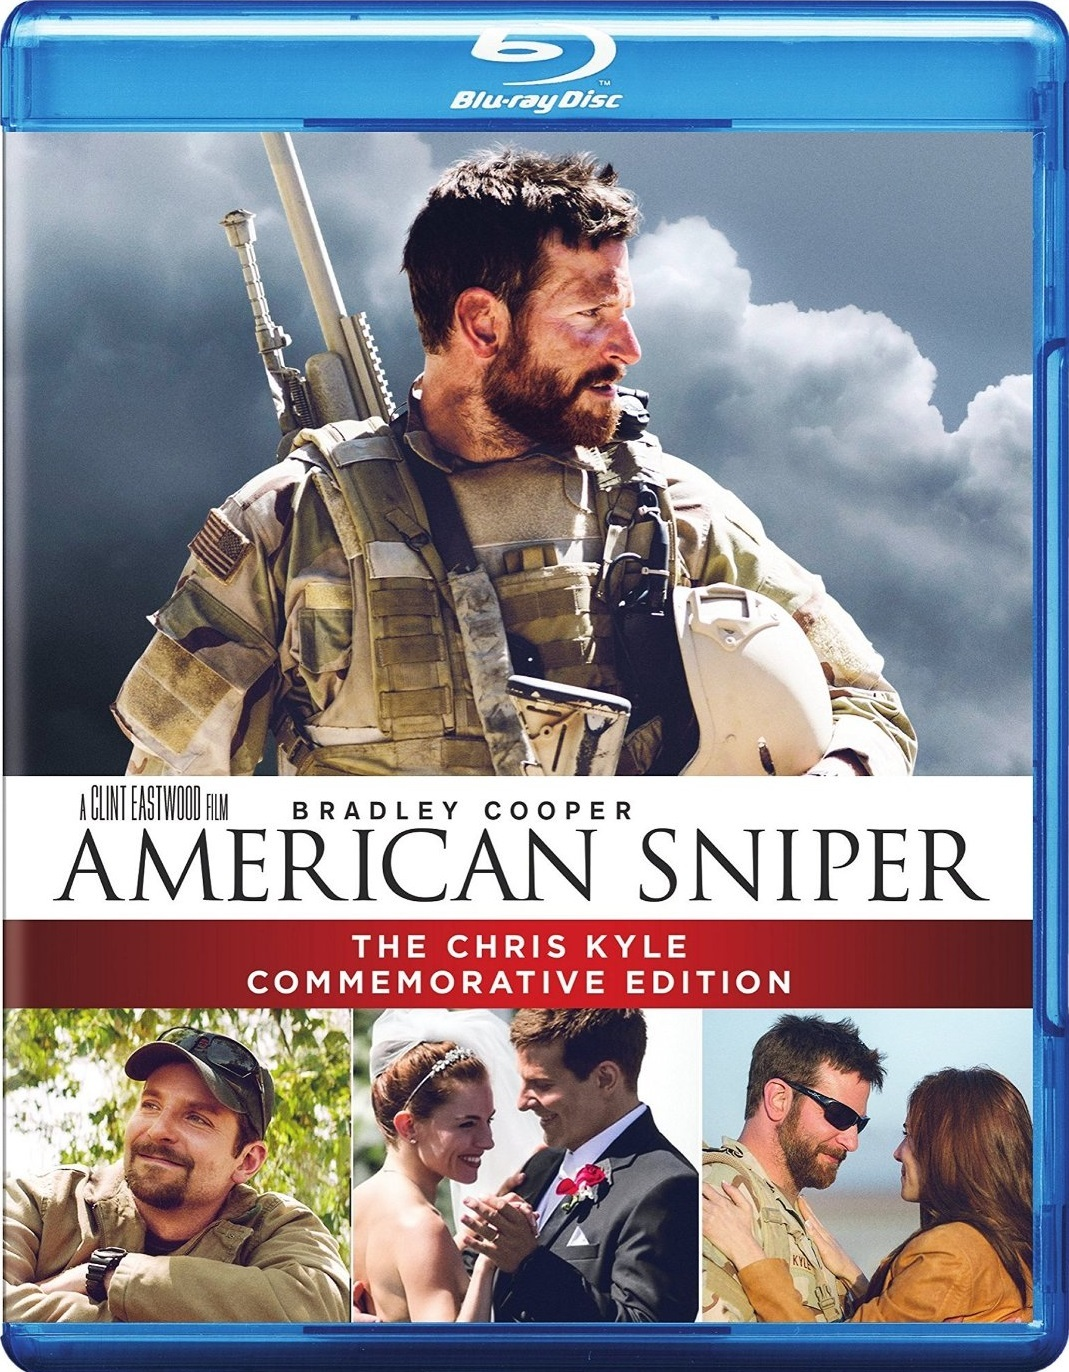 American Sniper Libro En Español American Sniper Blu Ray The Chris Kyle Commemorative